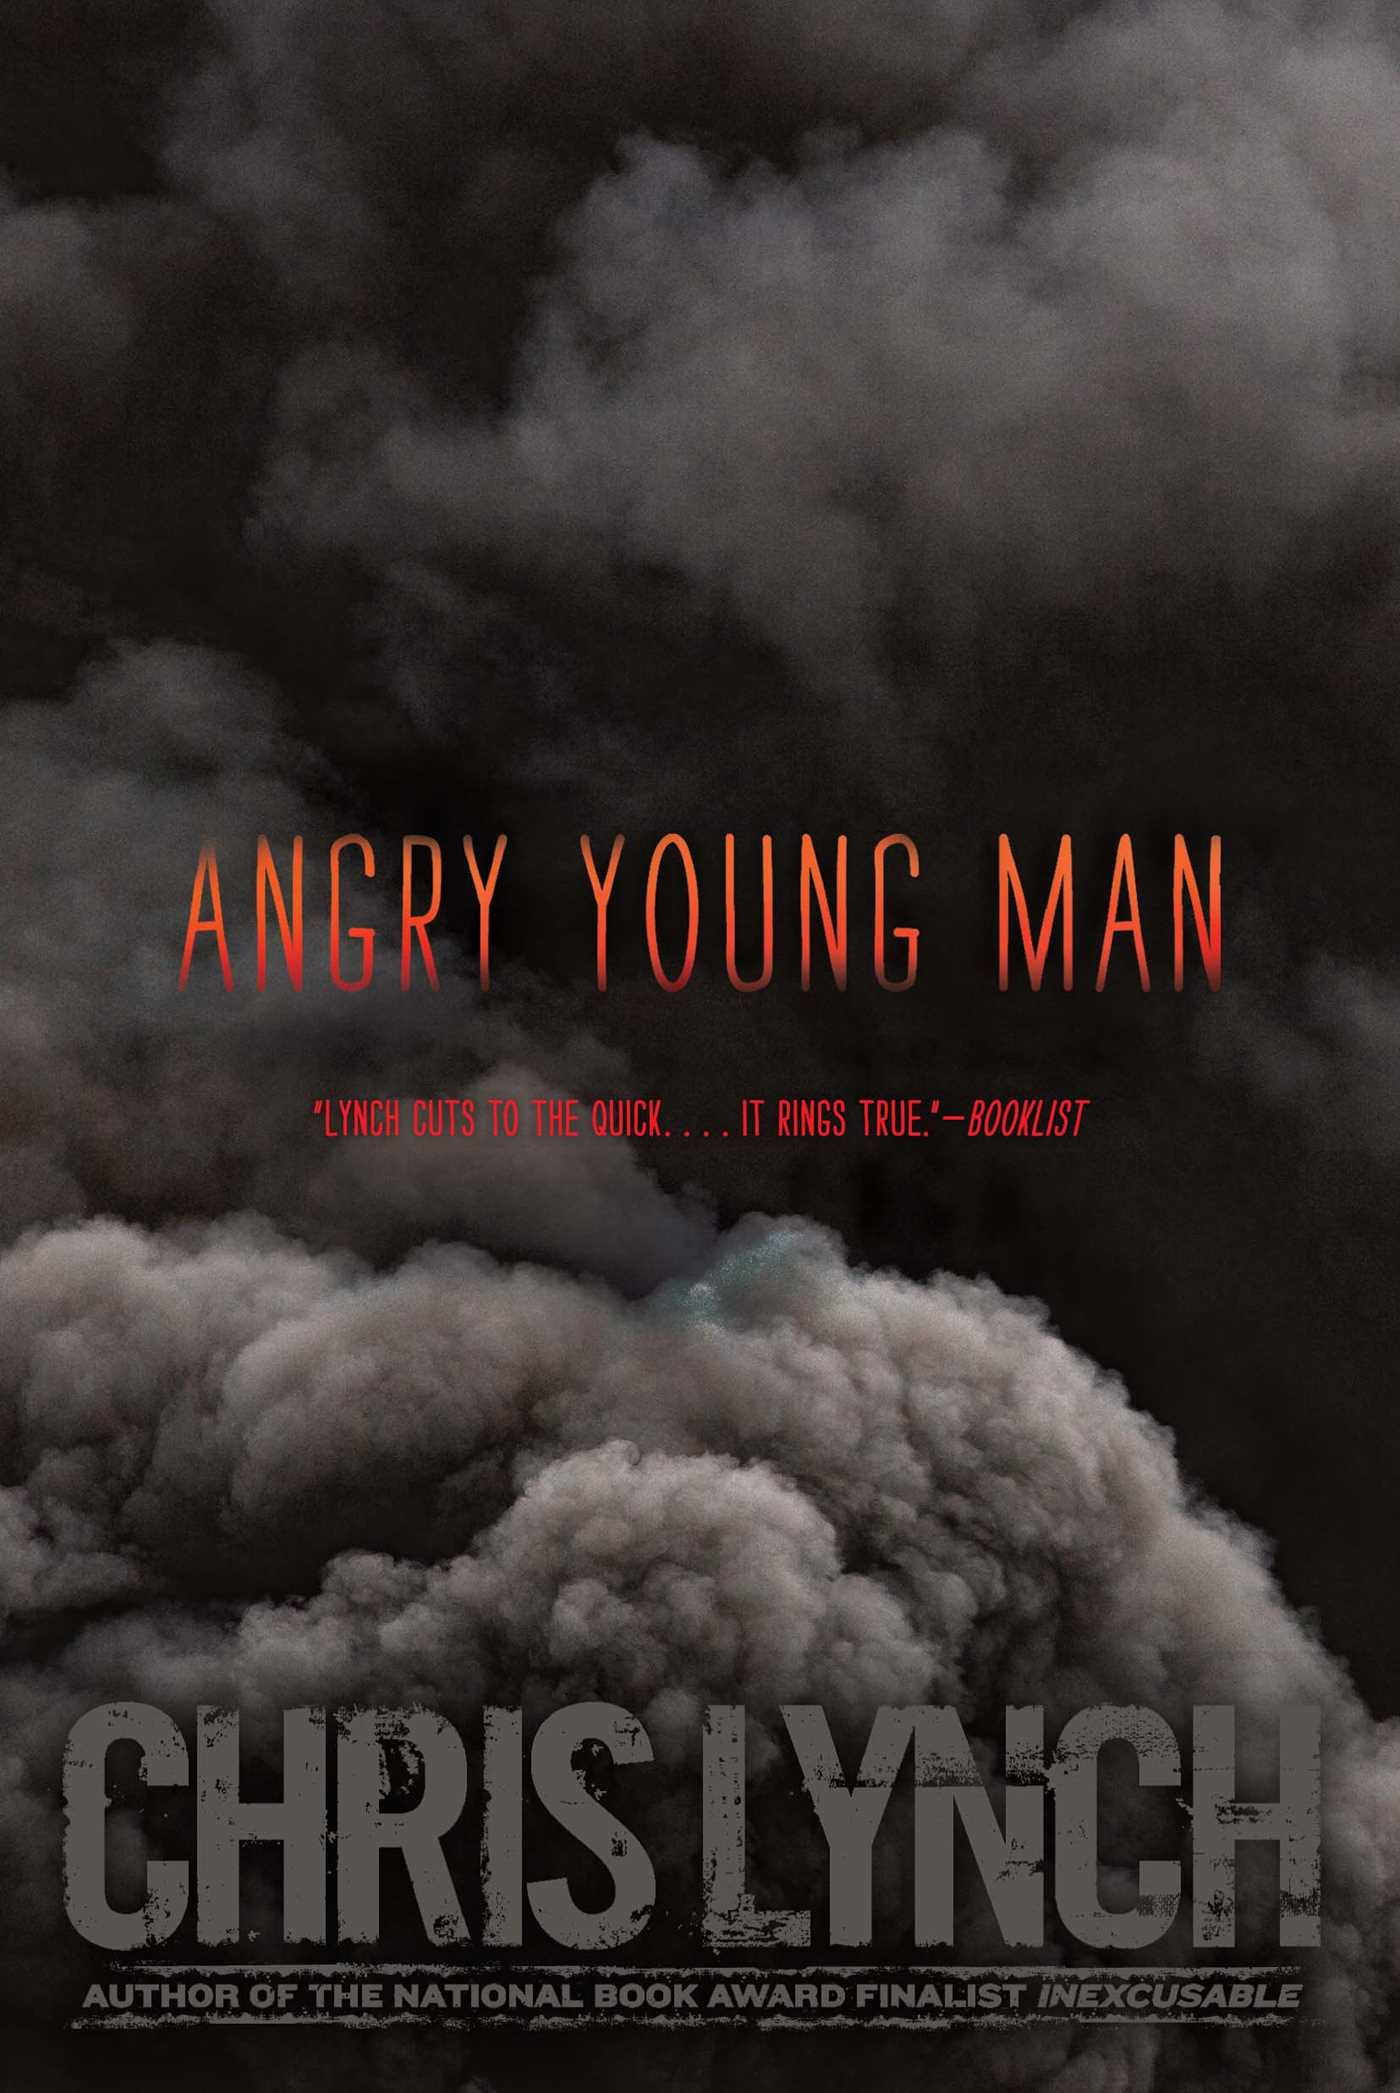 Angry-young-man-9781442454194_hr